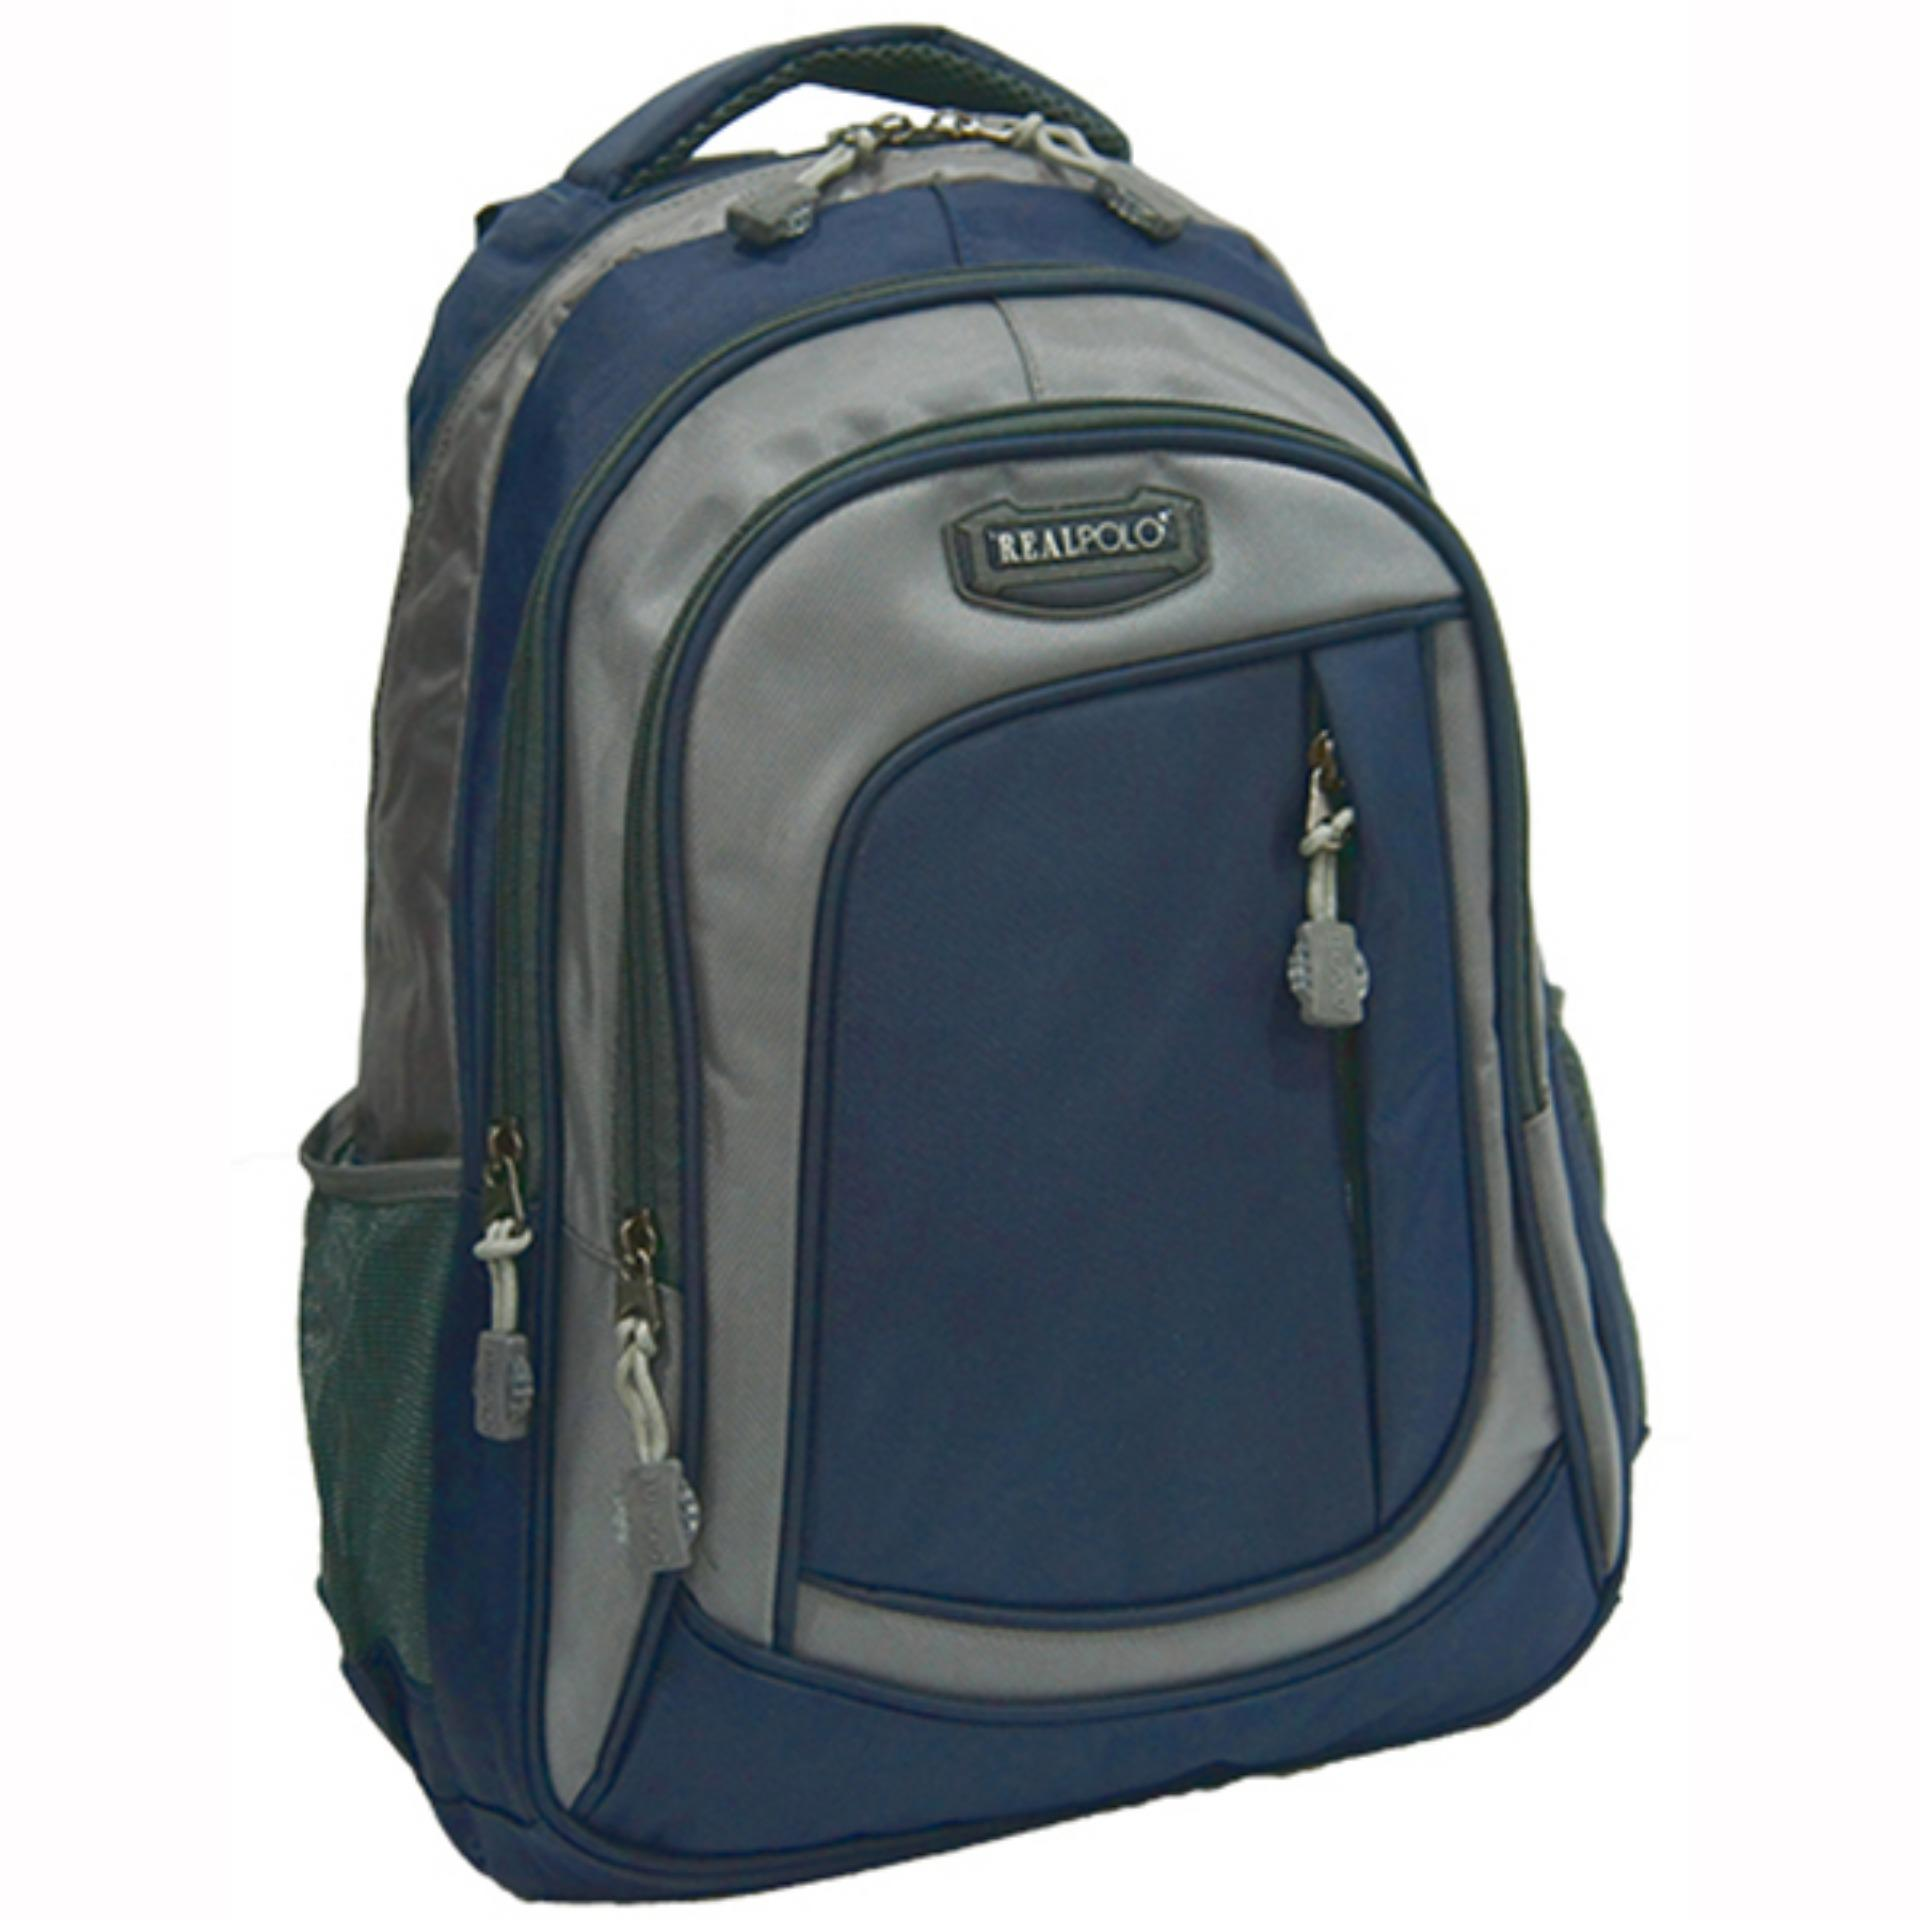 Beli Real Polo Tas Ransel Kasual 6287 Backpack Daypack Biru Nyicil